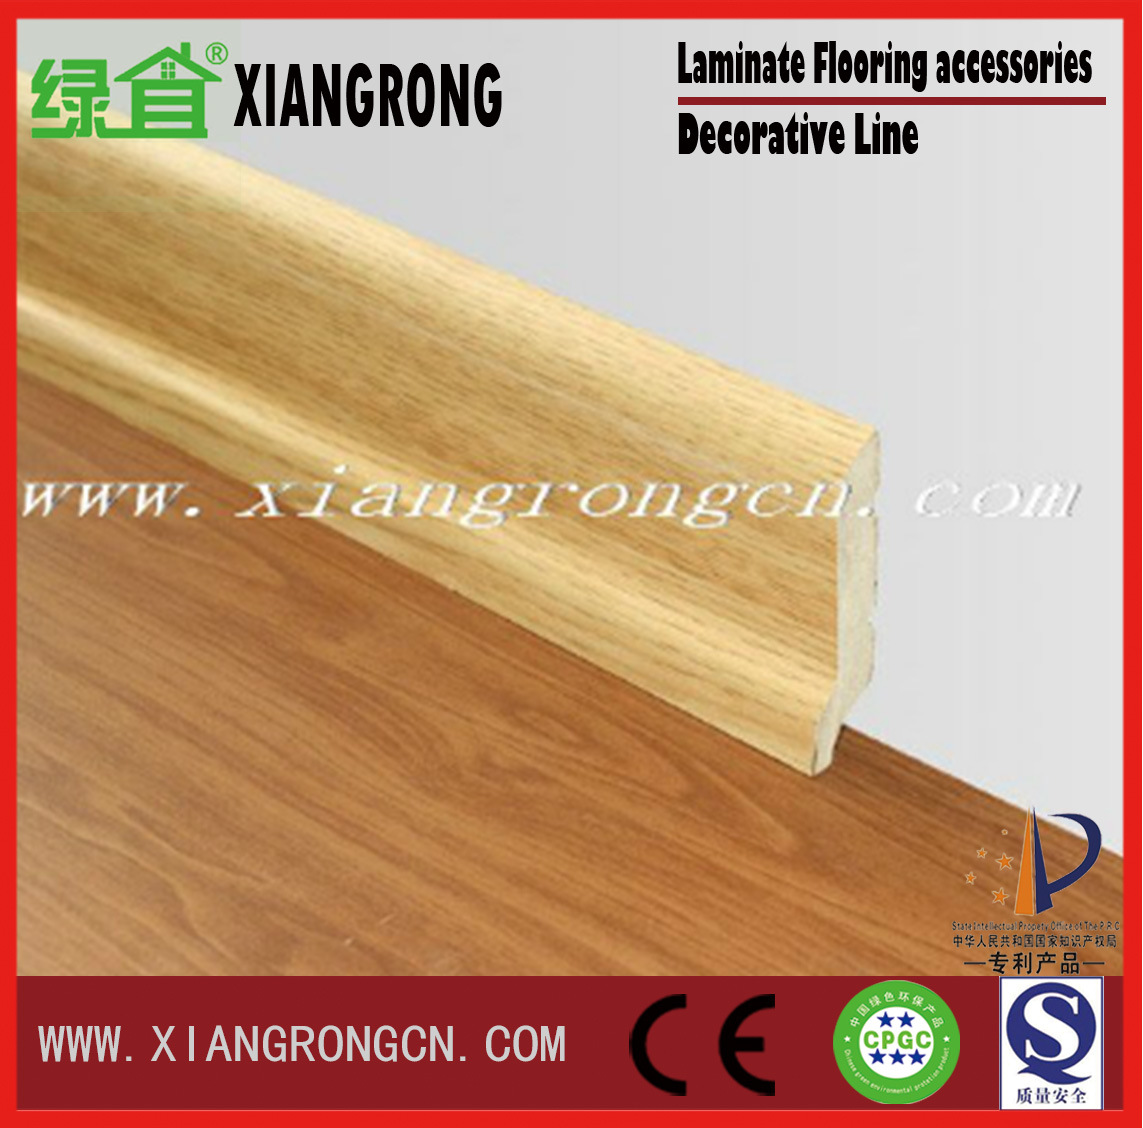 China Mdf Hdf Skirting Board Suitable For Laminate Flooring Accessory Decorate Material